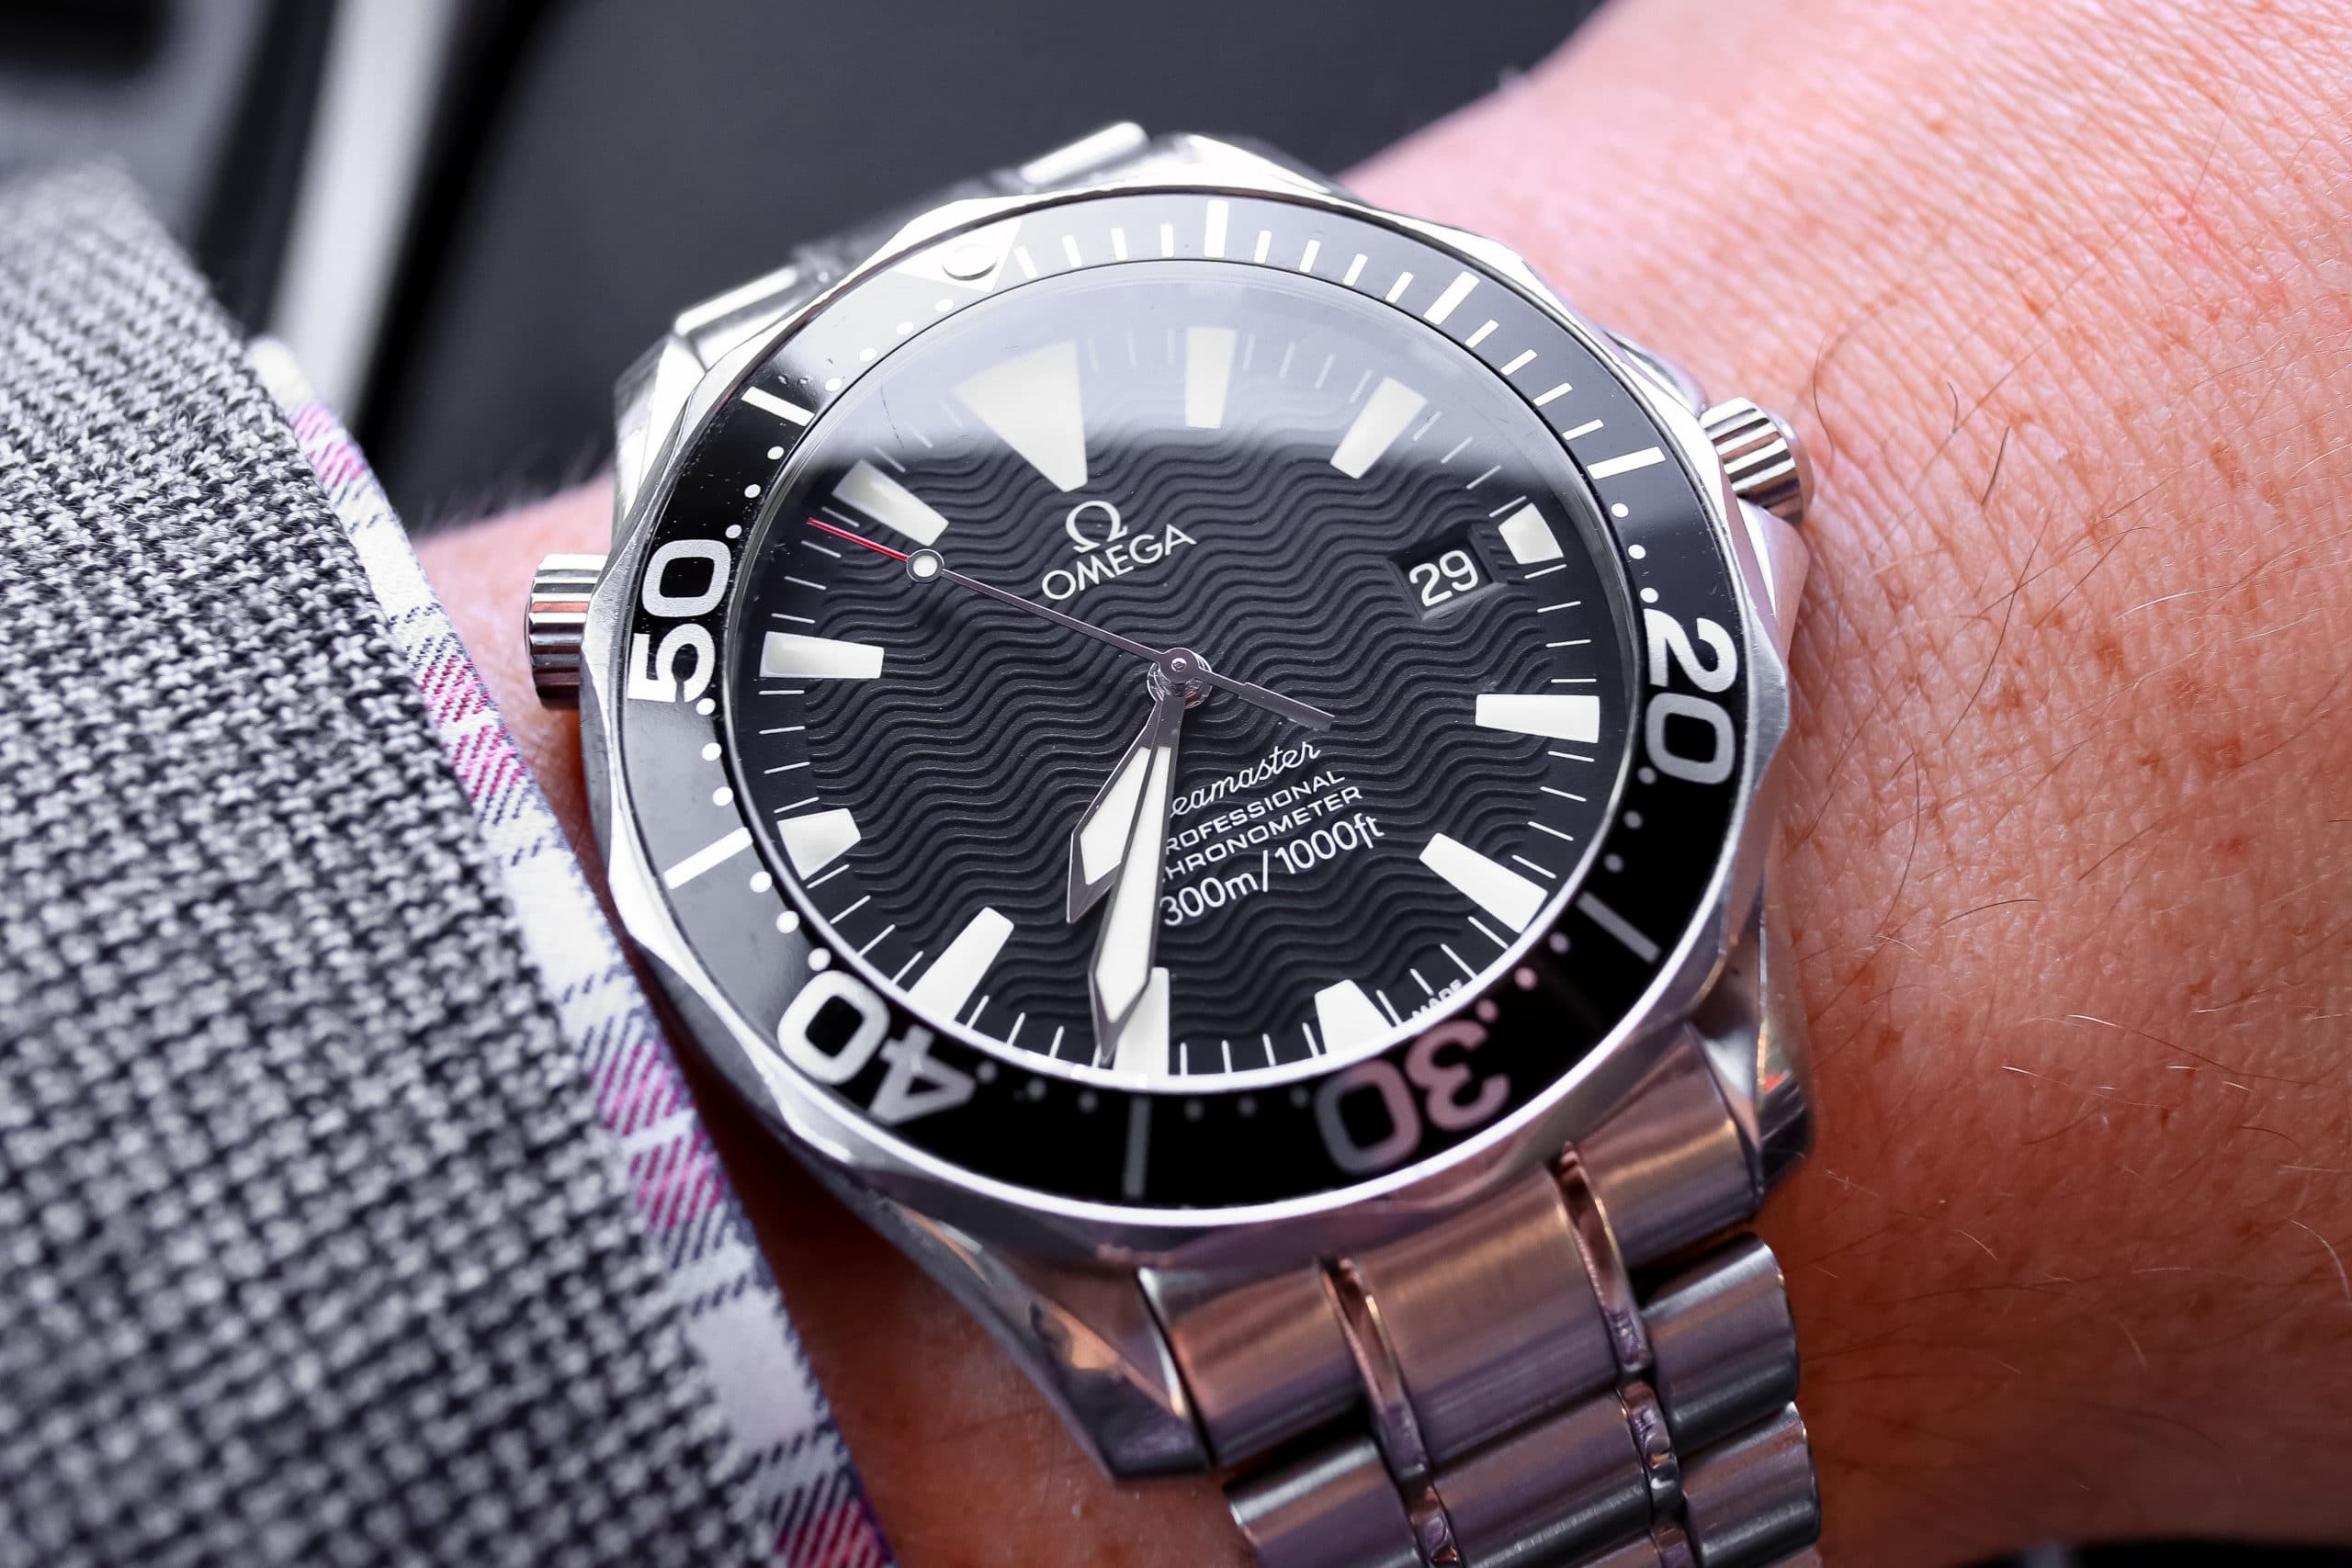 Omega Seamaster Professional 300m Review 2254 50 00 Two Broke Watch Snobs